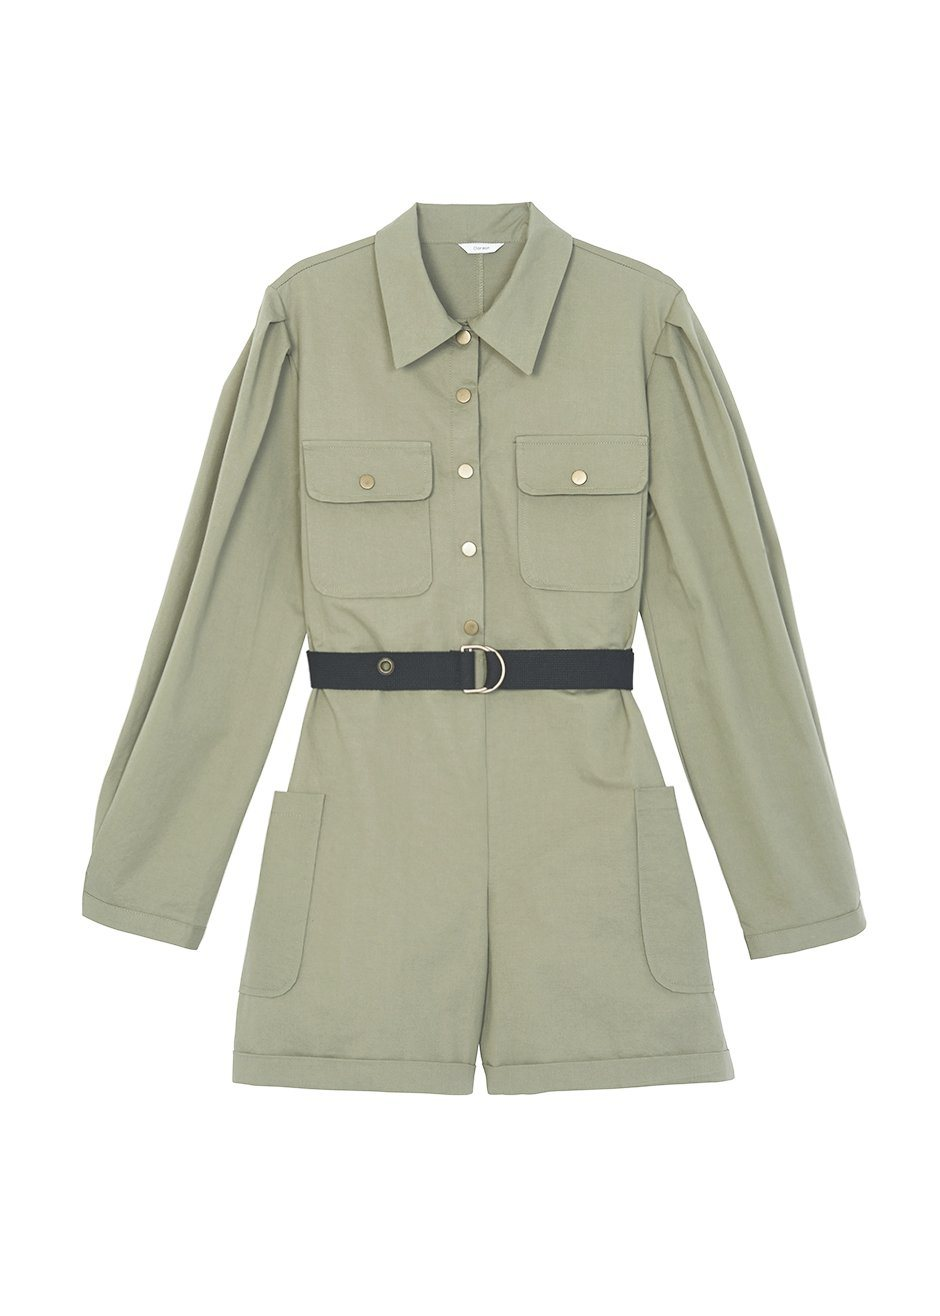 Military Green Utility Romper with Black Belt